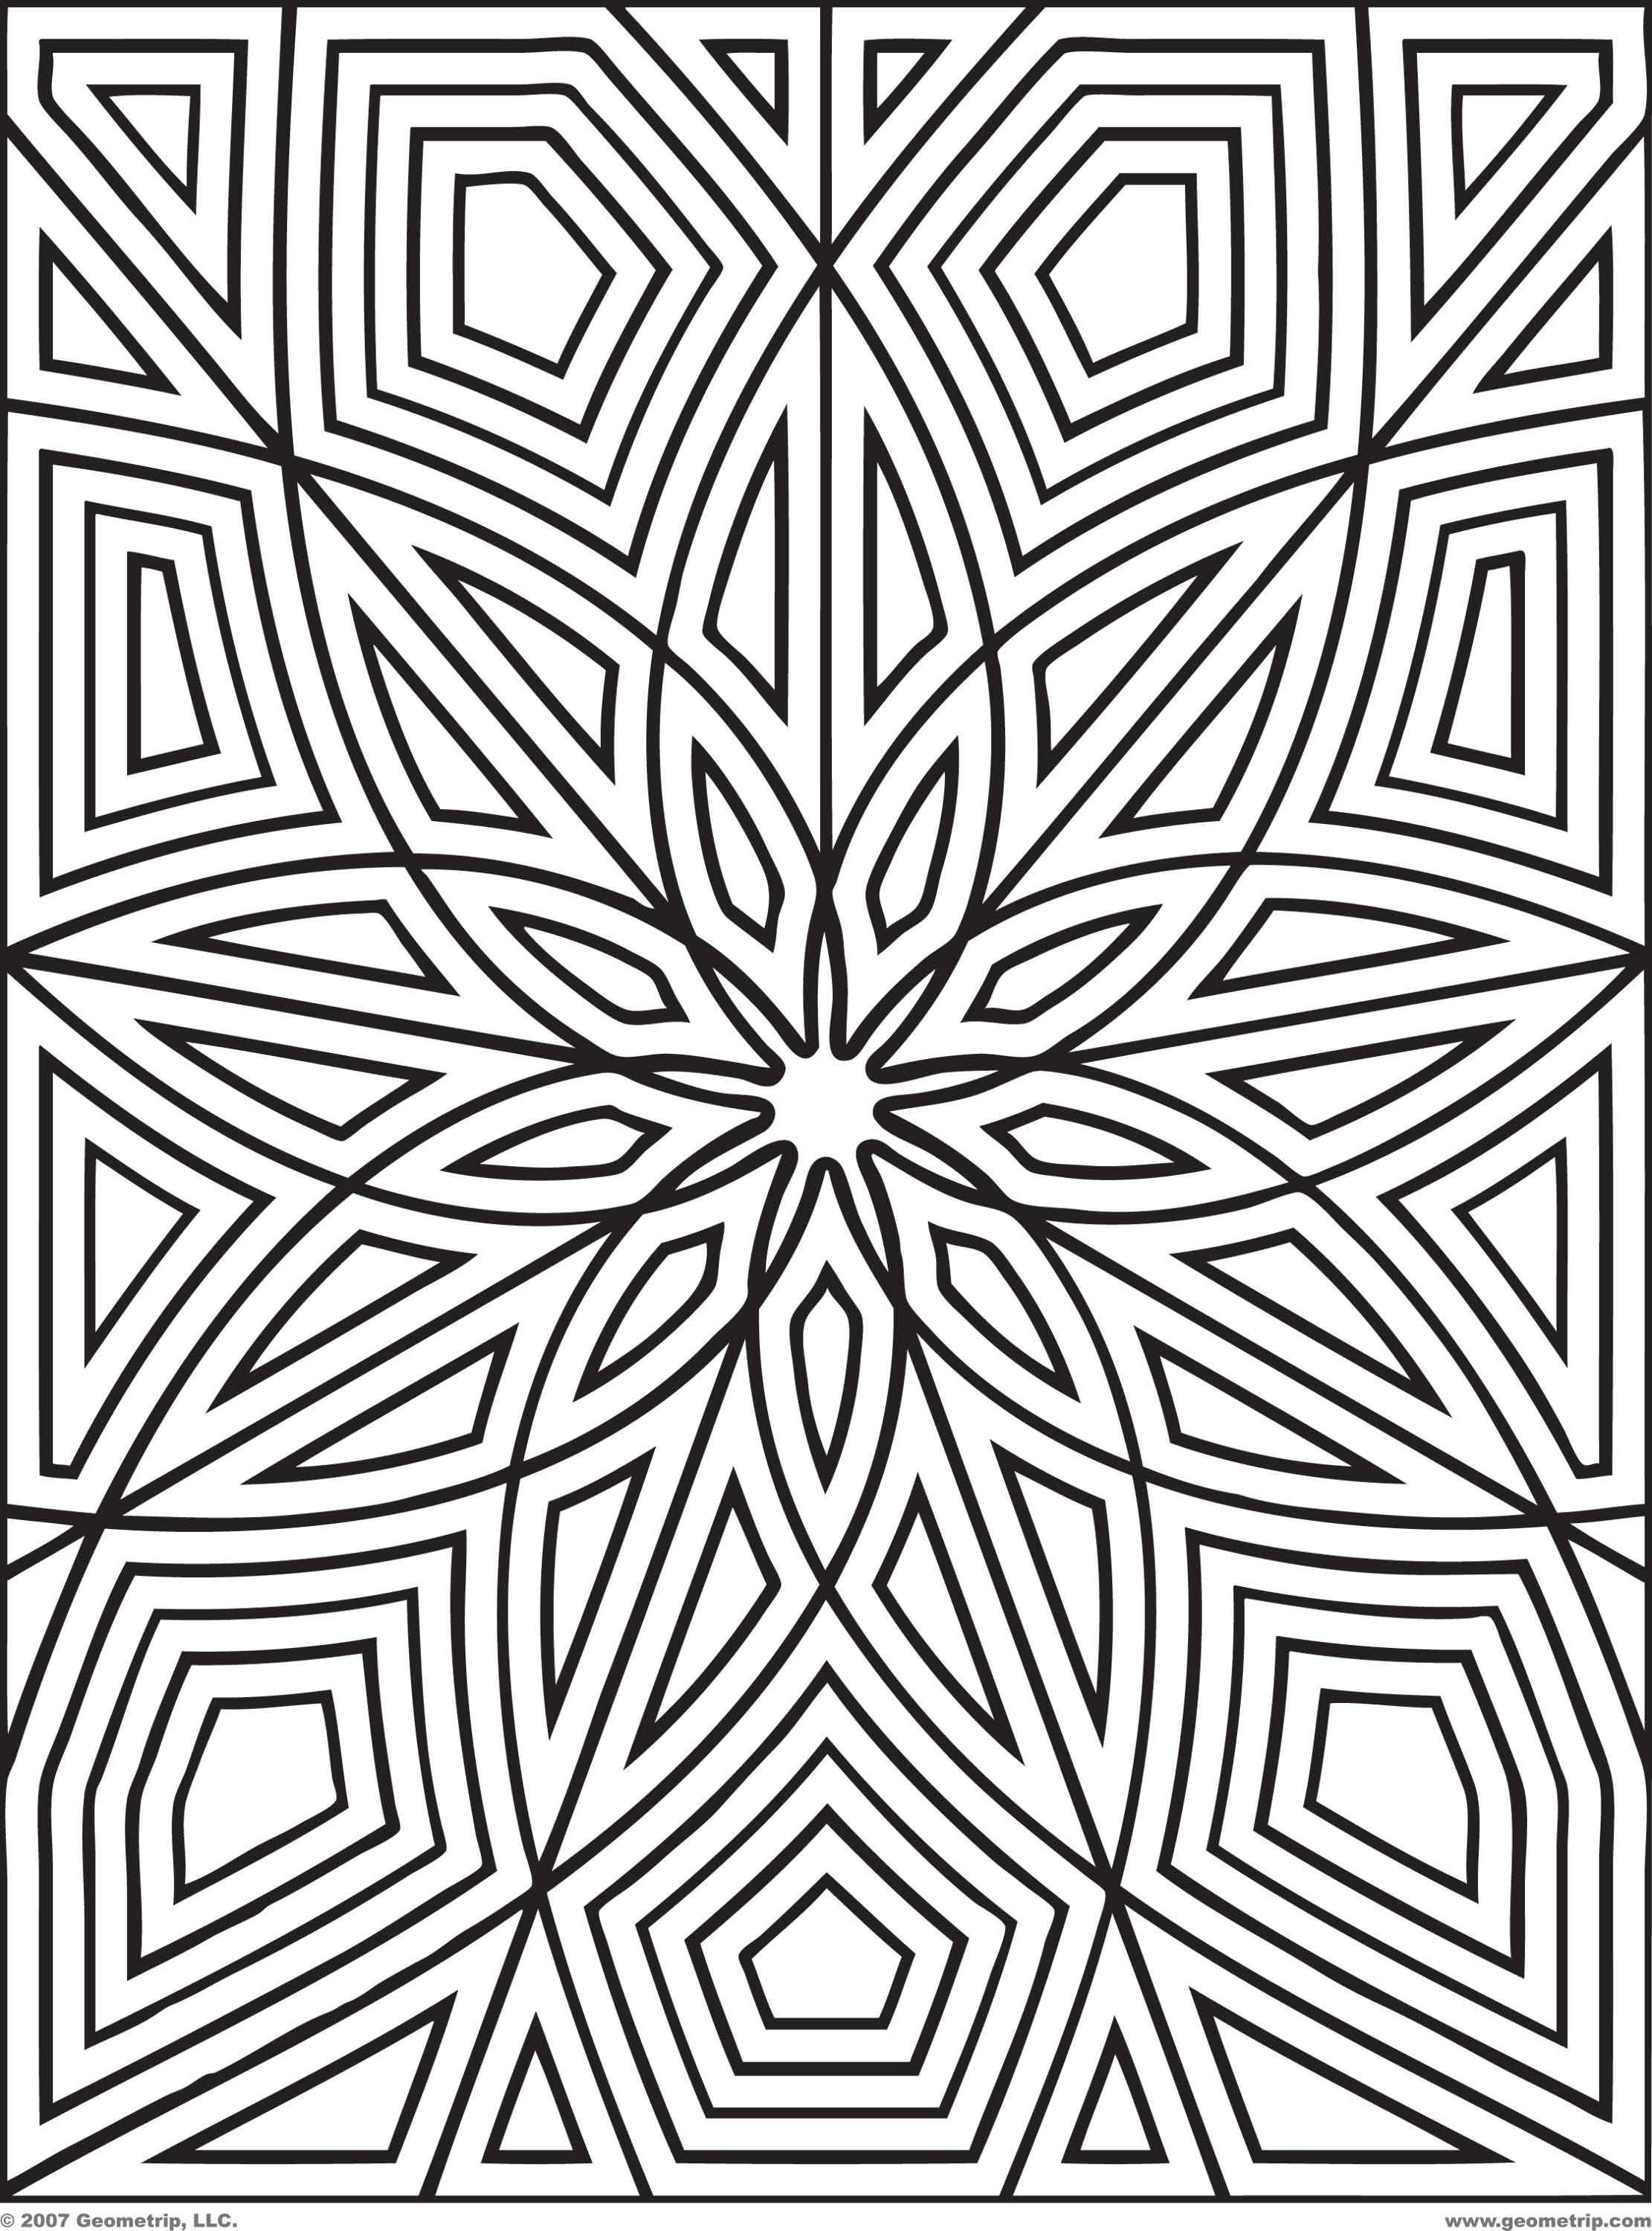 Coloring Page Patterns 1000+ images about GEOMETRIC COLORING PATTERNS on Pinterest  Coloring pages, Coloring pages for kids and Geometric patterns